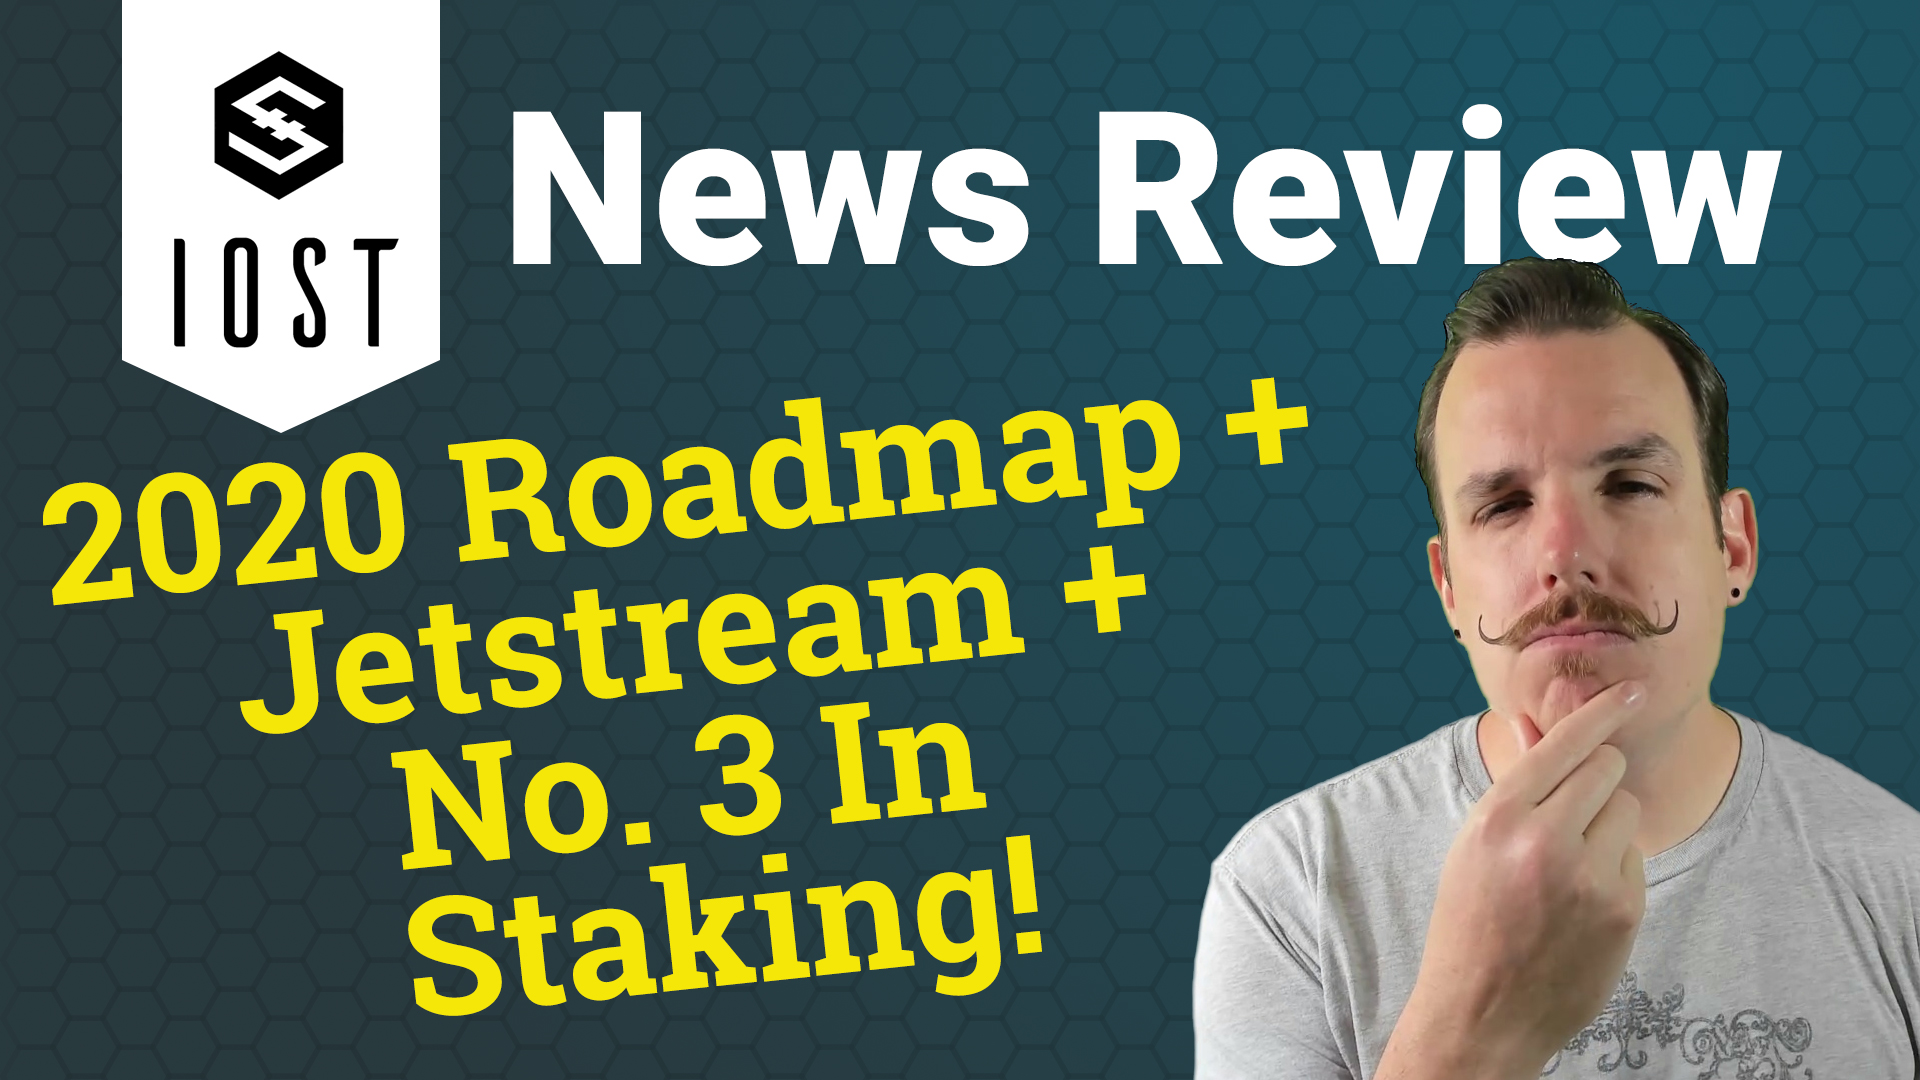 IOST News Review: 2020 Roadmap, Jetstream Wallet, Top 3 Profitable Staking Coin